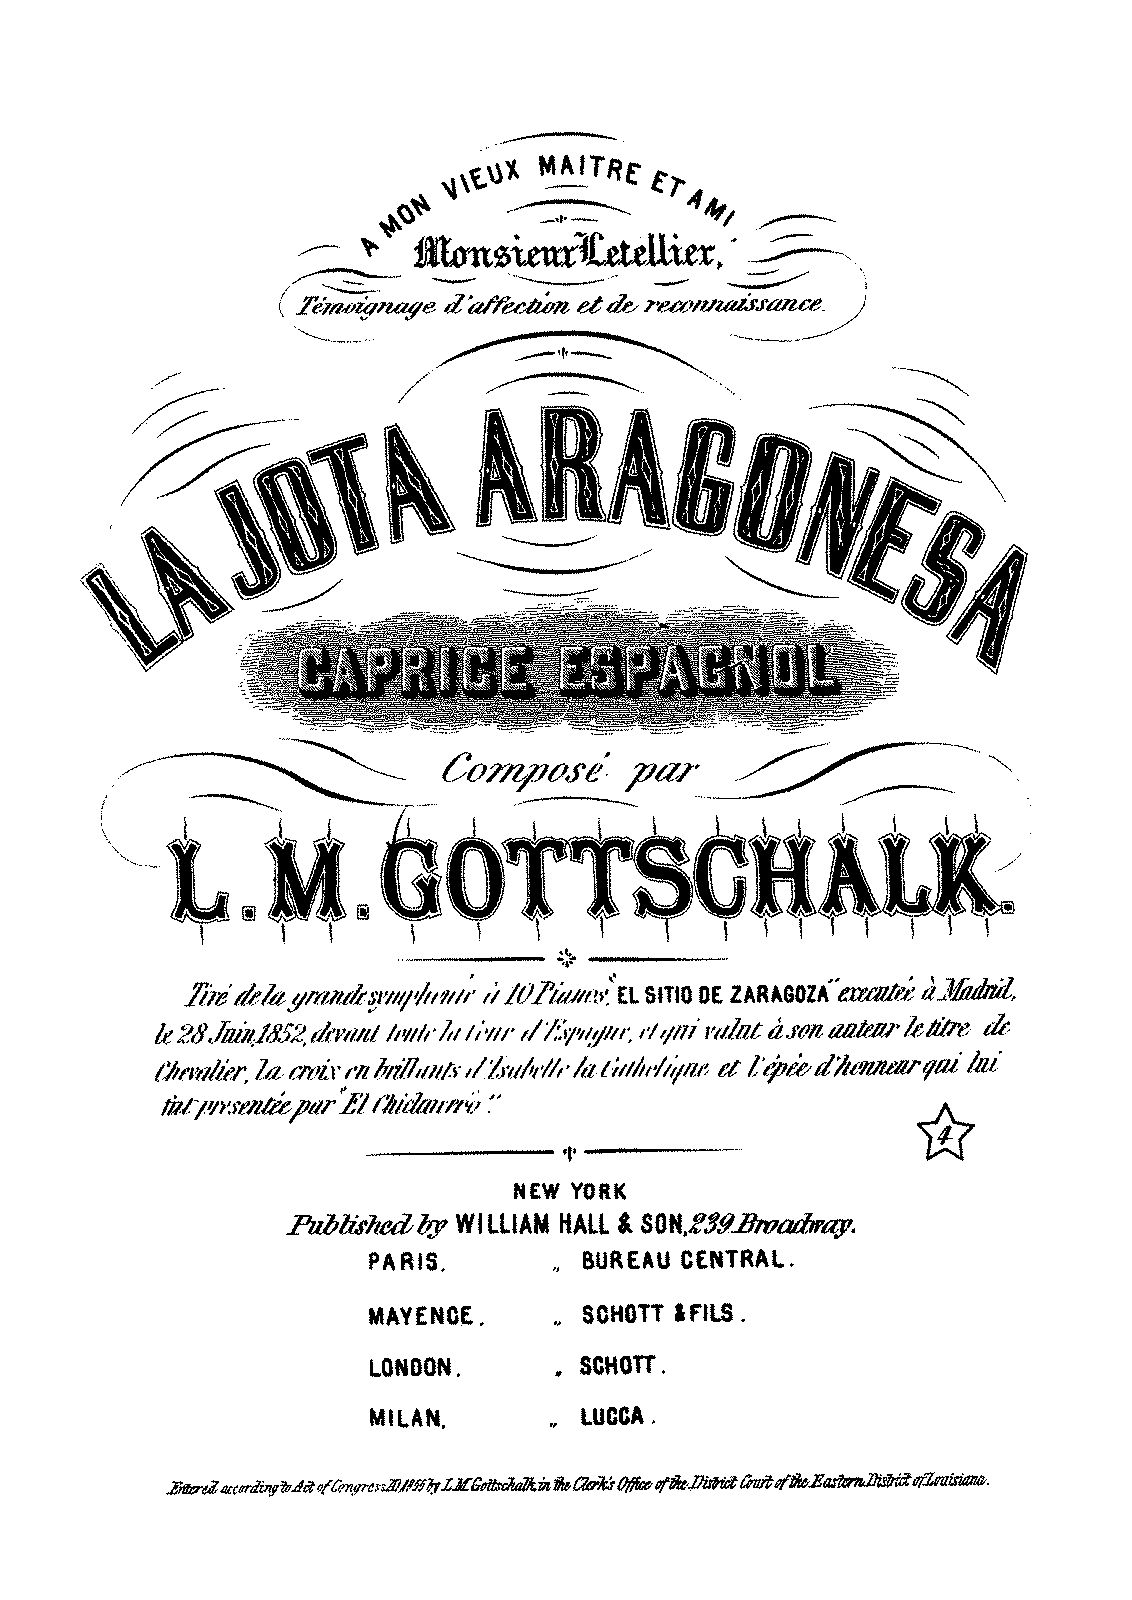 PMLP18697-Gottschalk - 14 La Jota Aragonesa - William Hall & Son.pdf